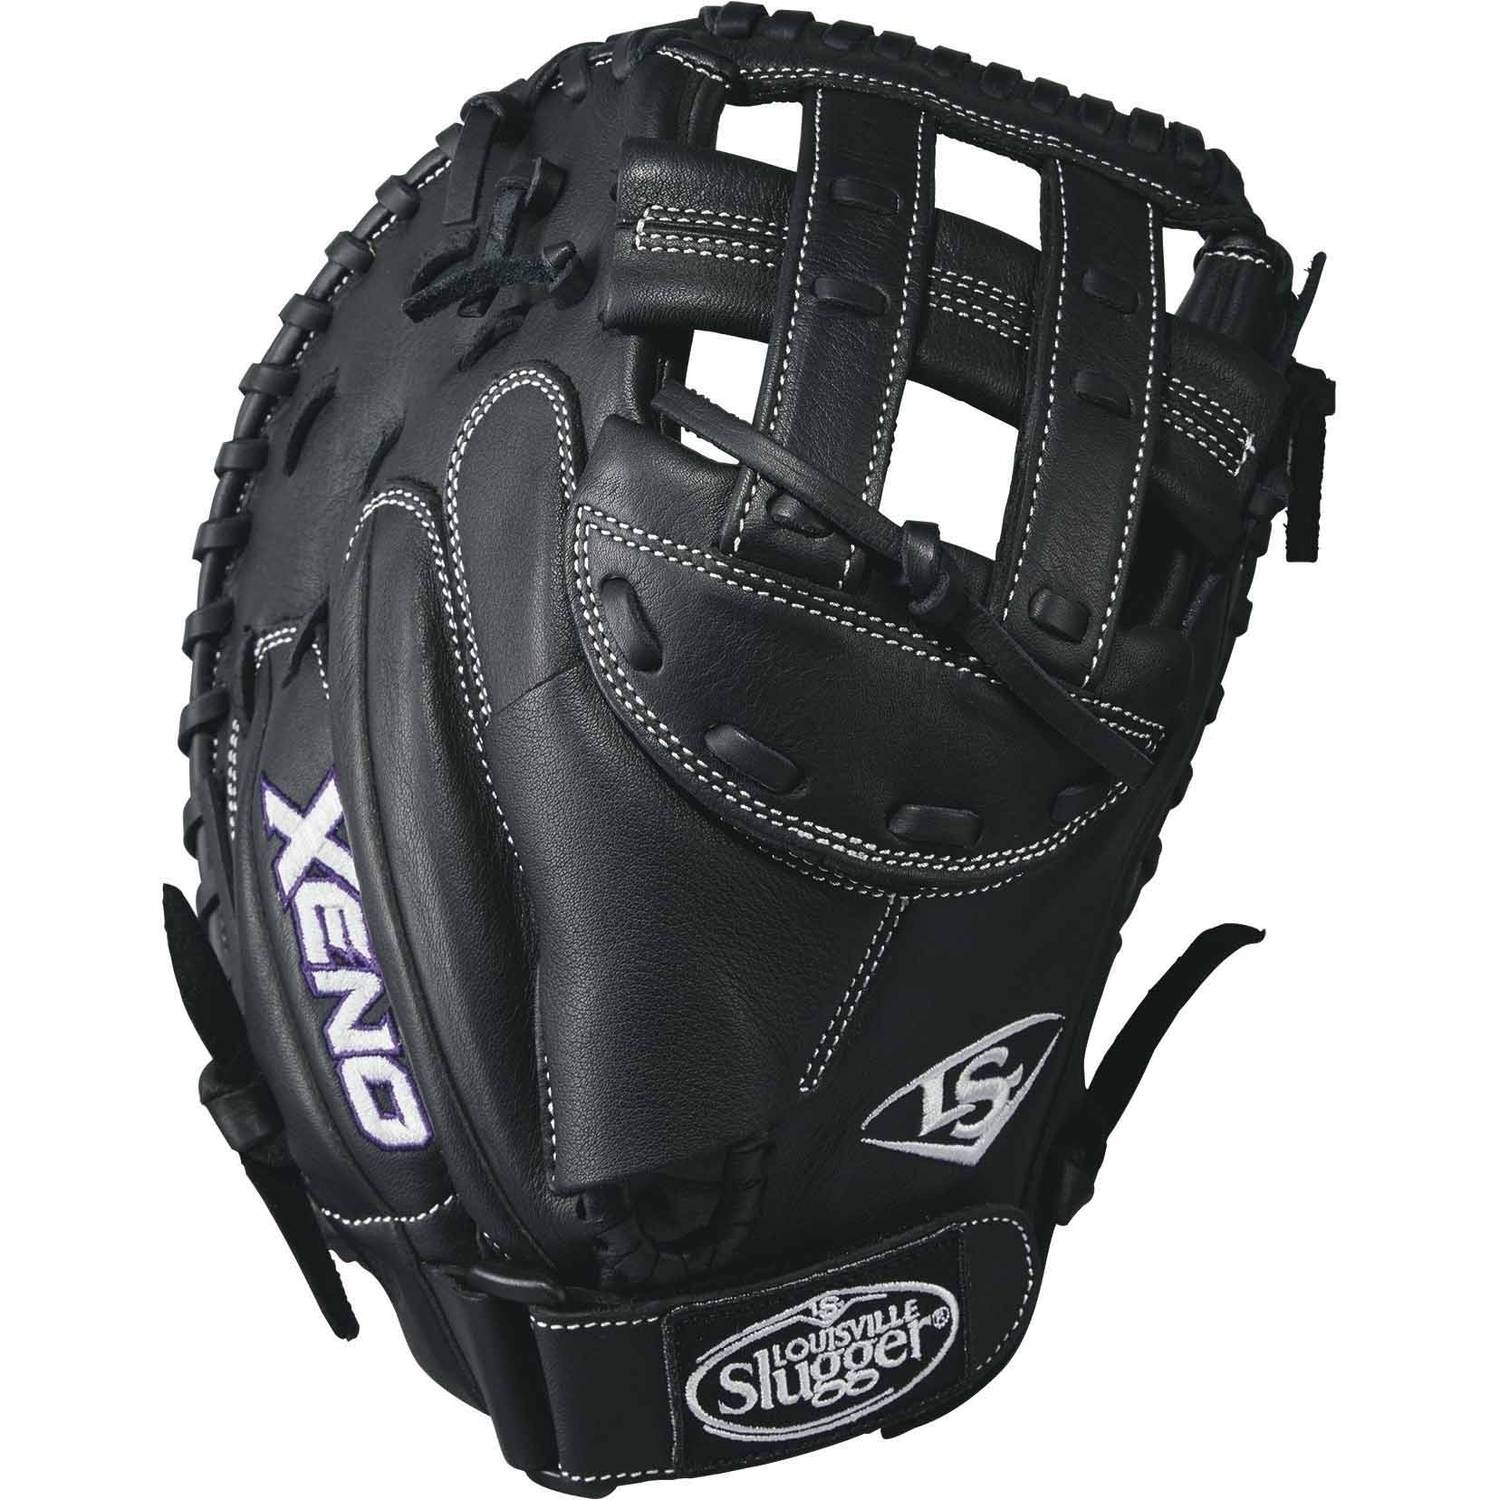 "Louisville Slugger Xeno Catcher's Mitt, Right Hand Throw, 33"" by Athletic Connection"